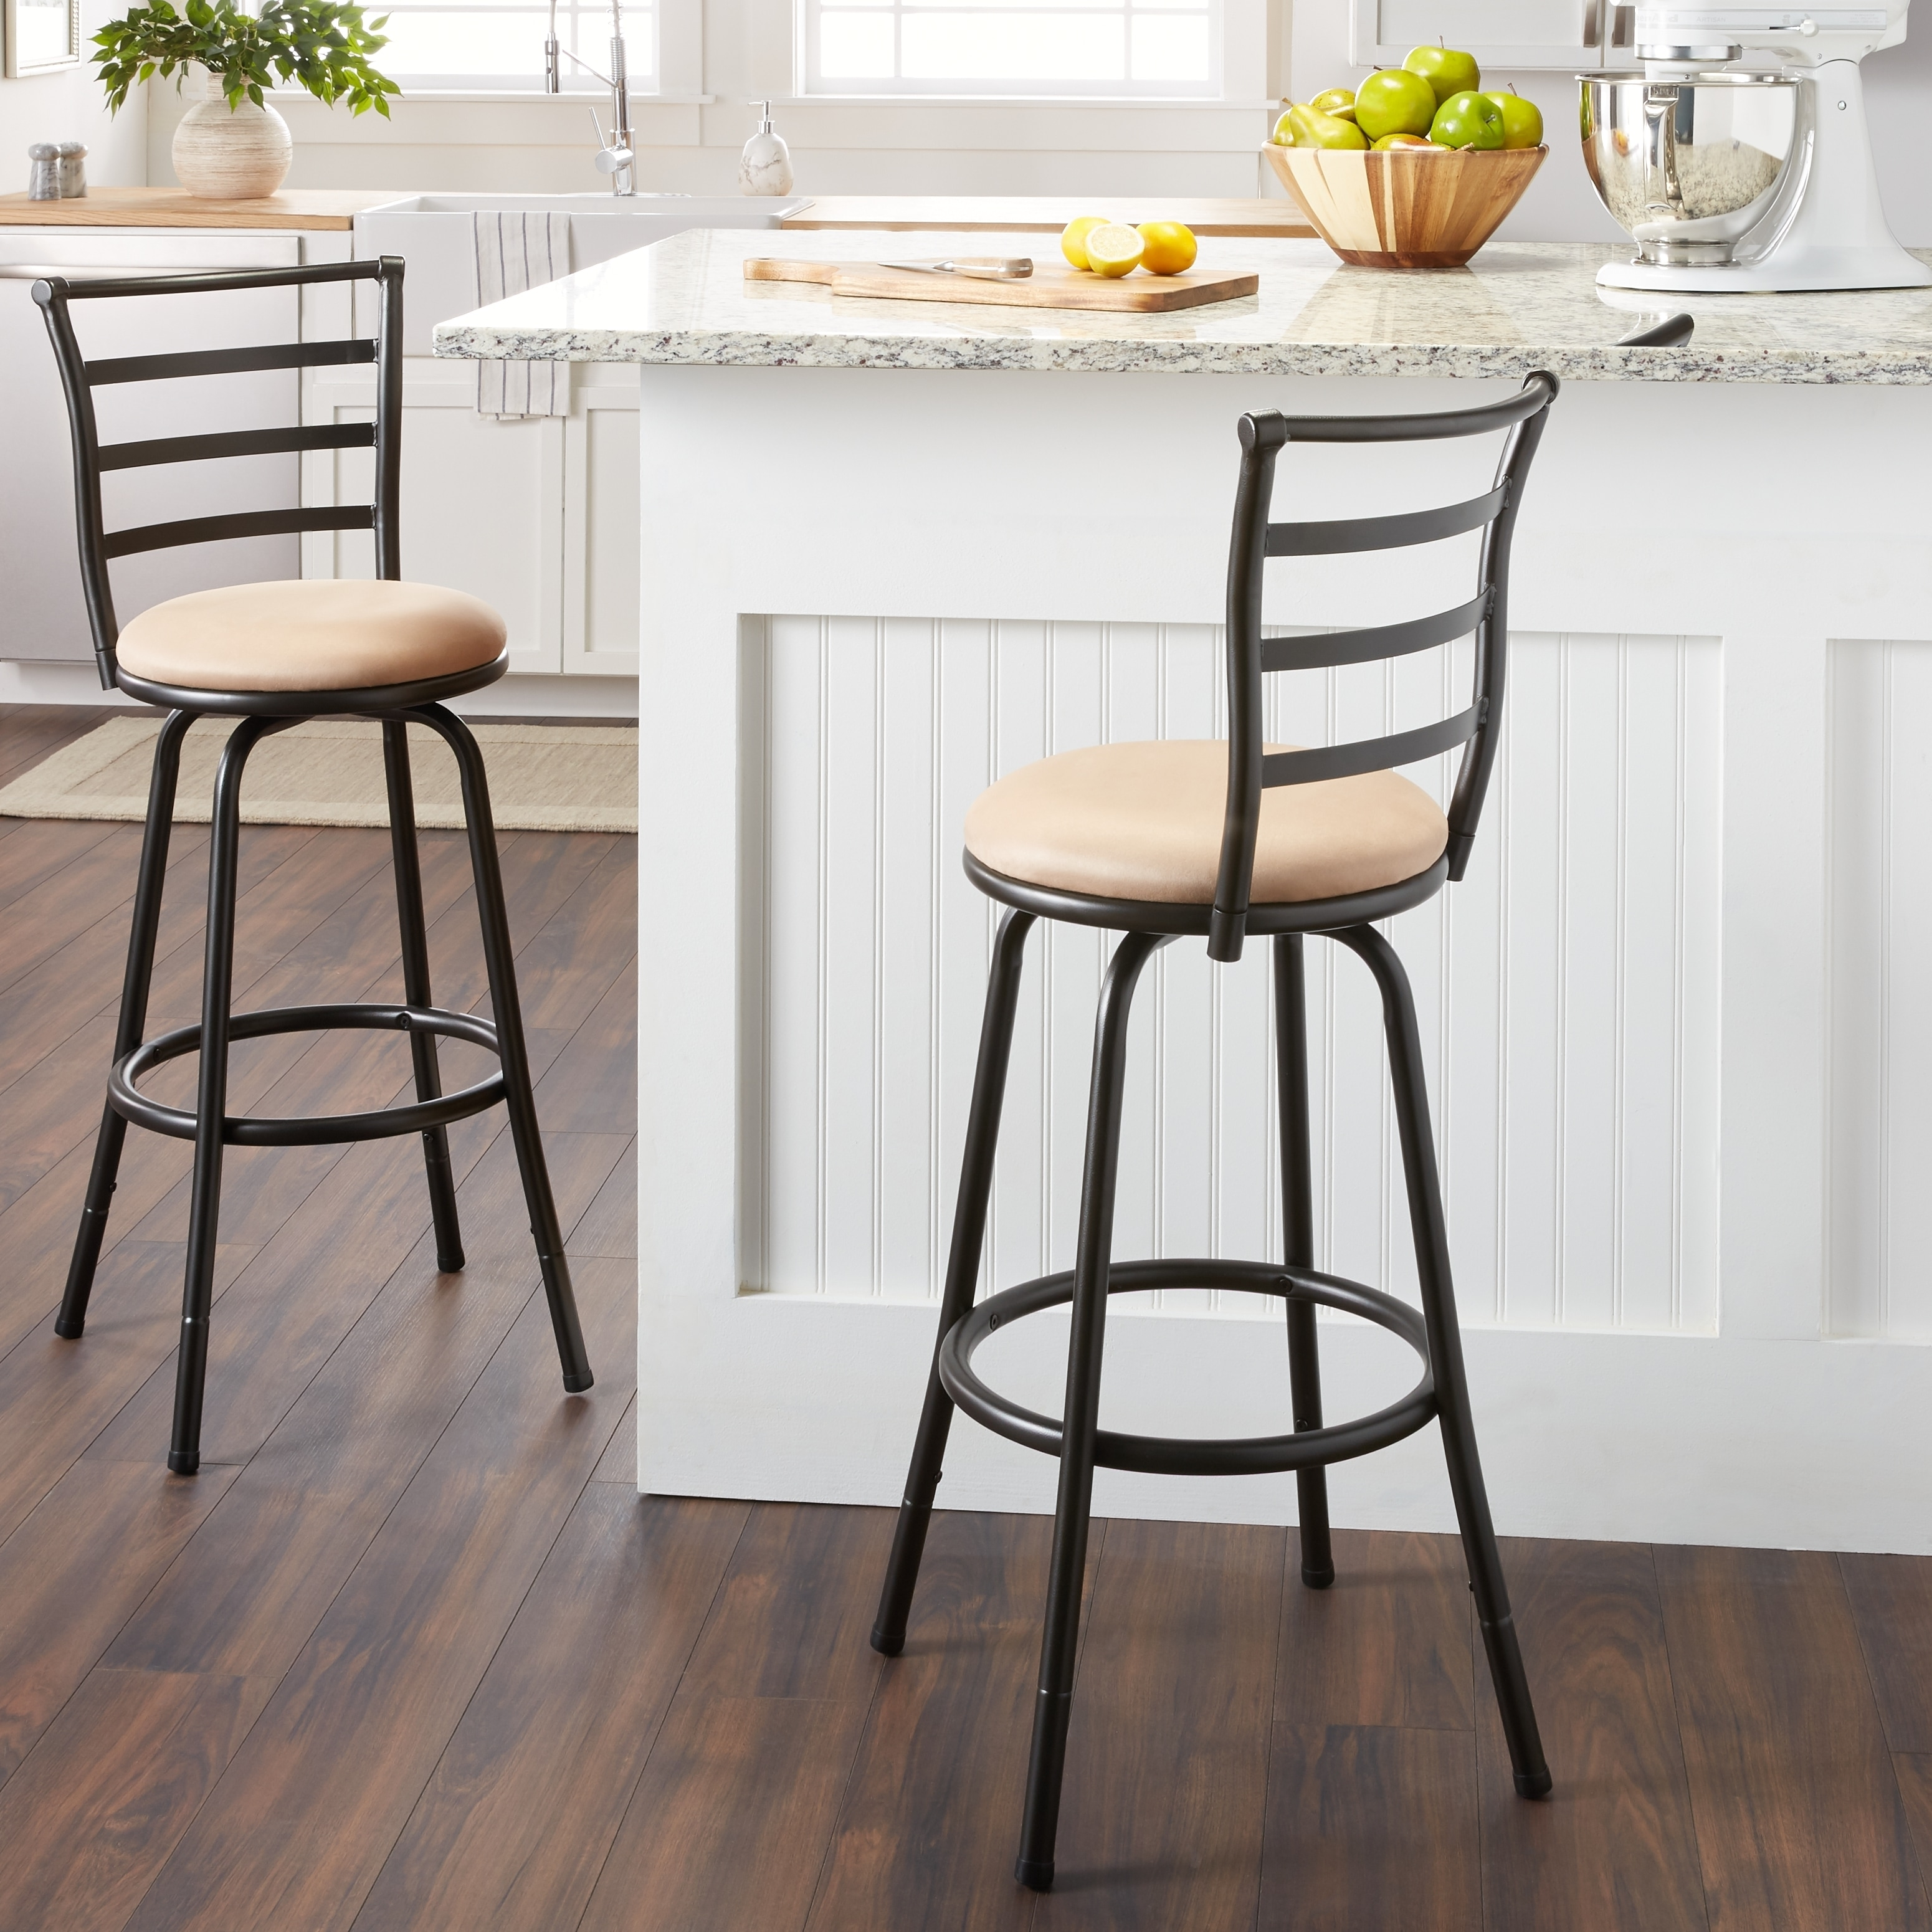 Incredible Details About Bar Stool Antique Brown Microfiber Metal Round Adjustable Swivel Stool Barstool Pdpeps Interior Chair Design Pdpepsorg